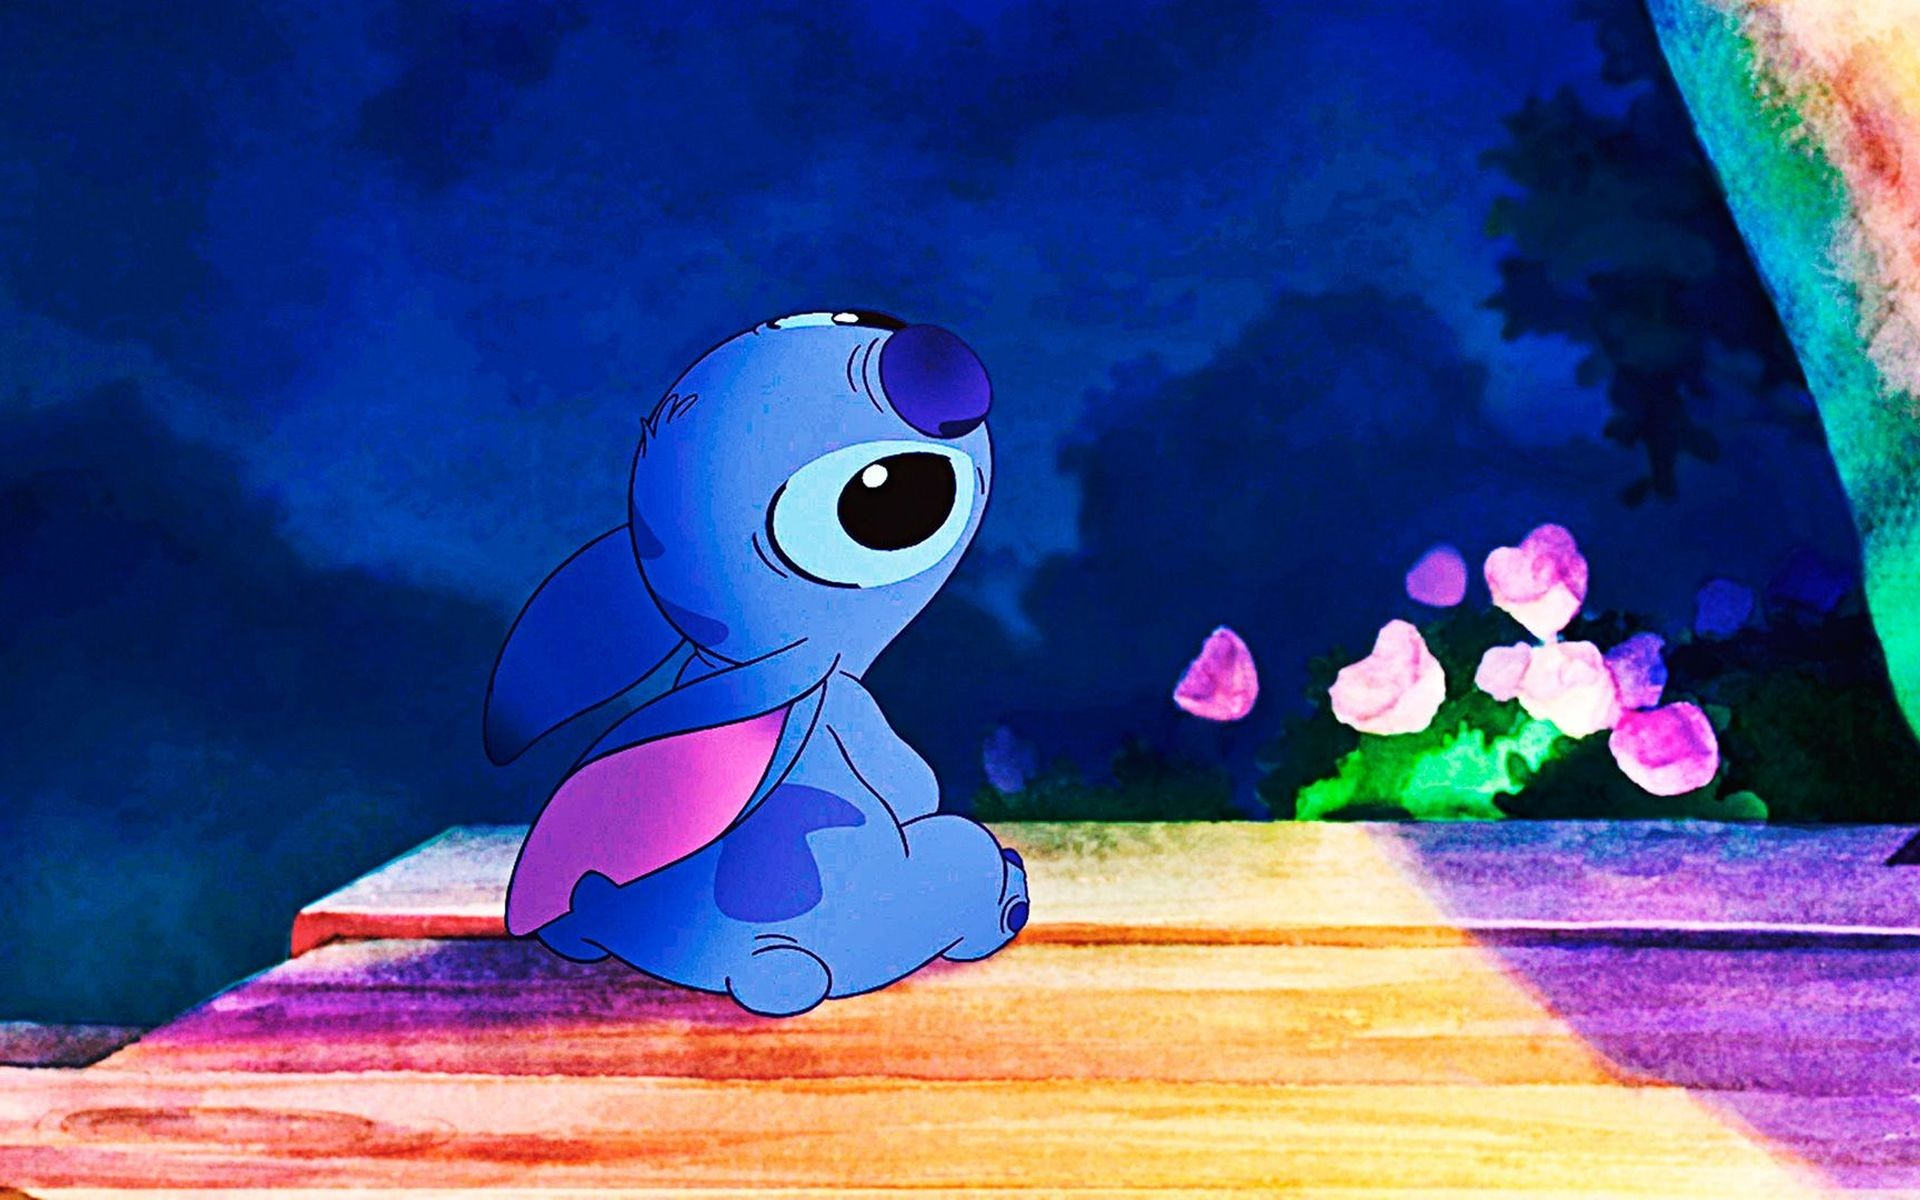 Cute Lilo And Stitch Wallpaper 60 Images